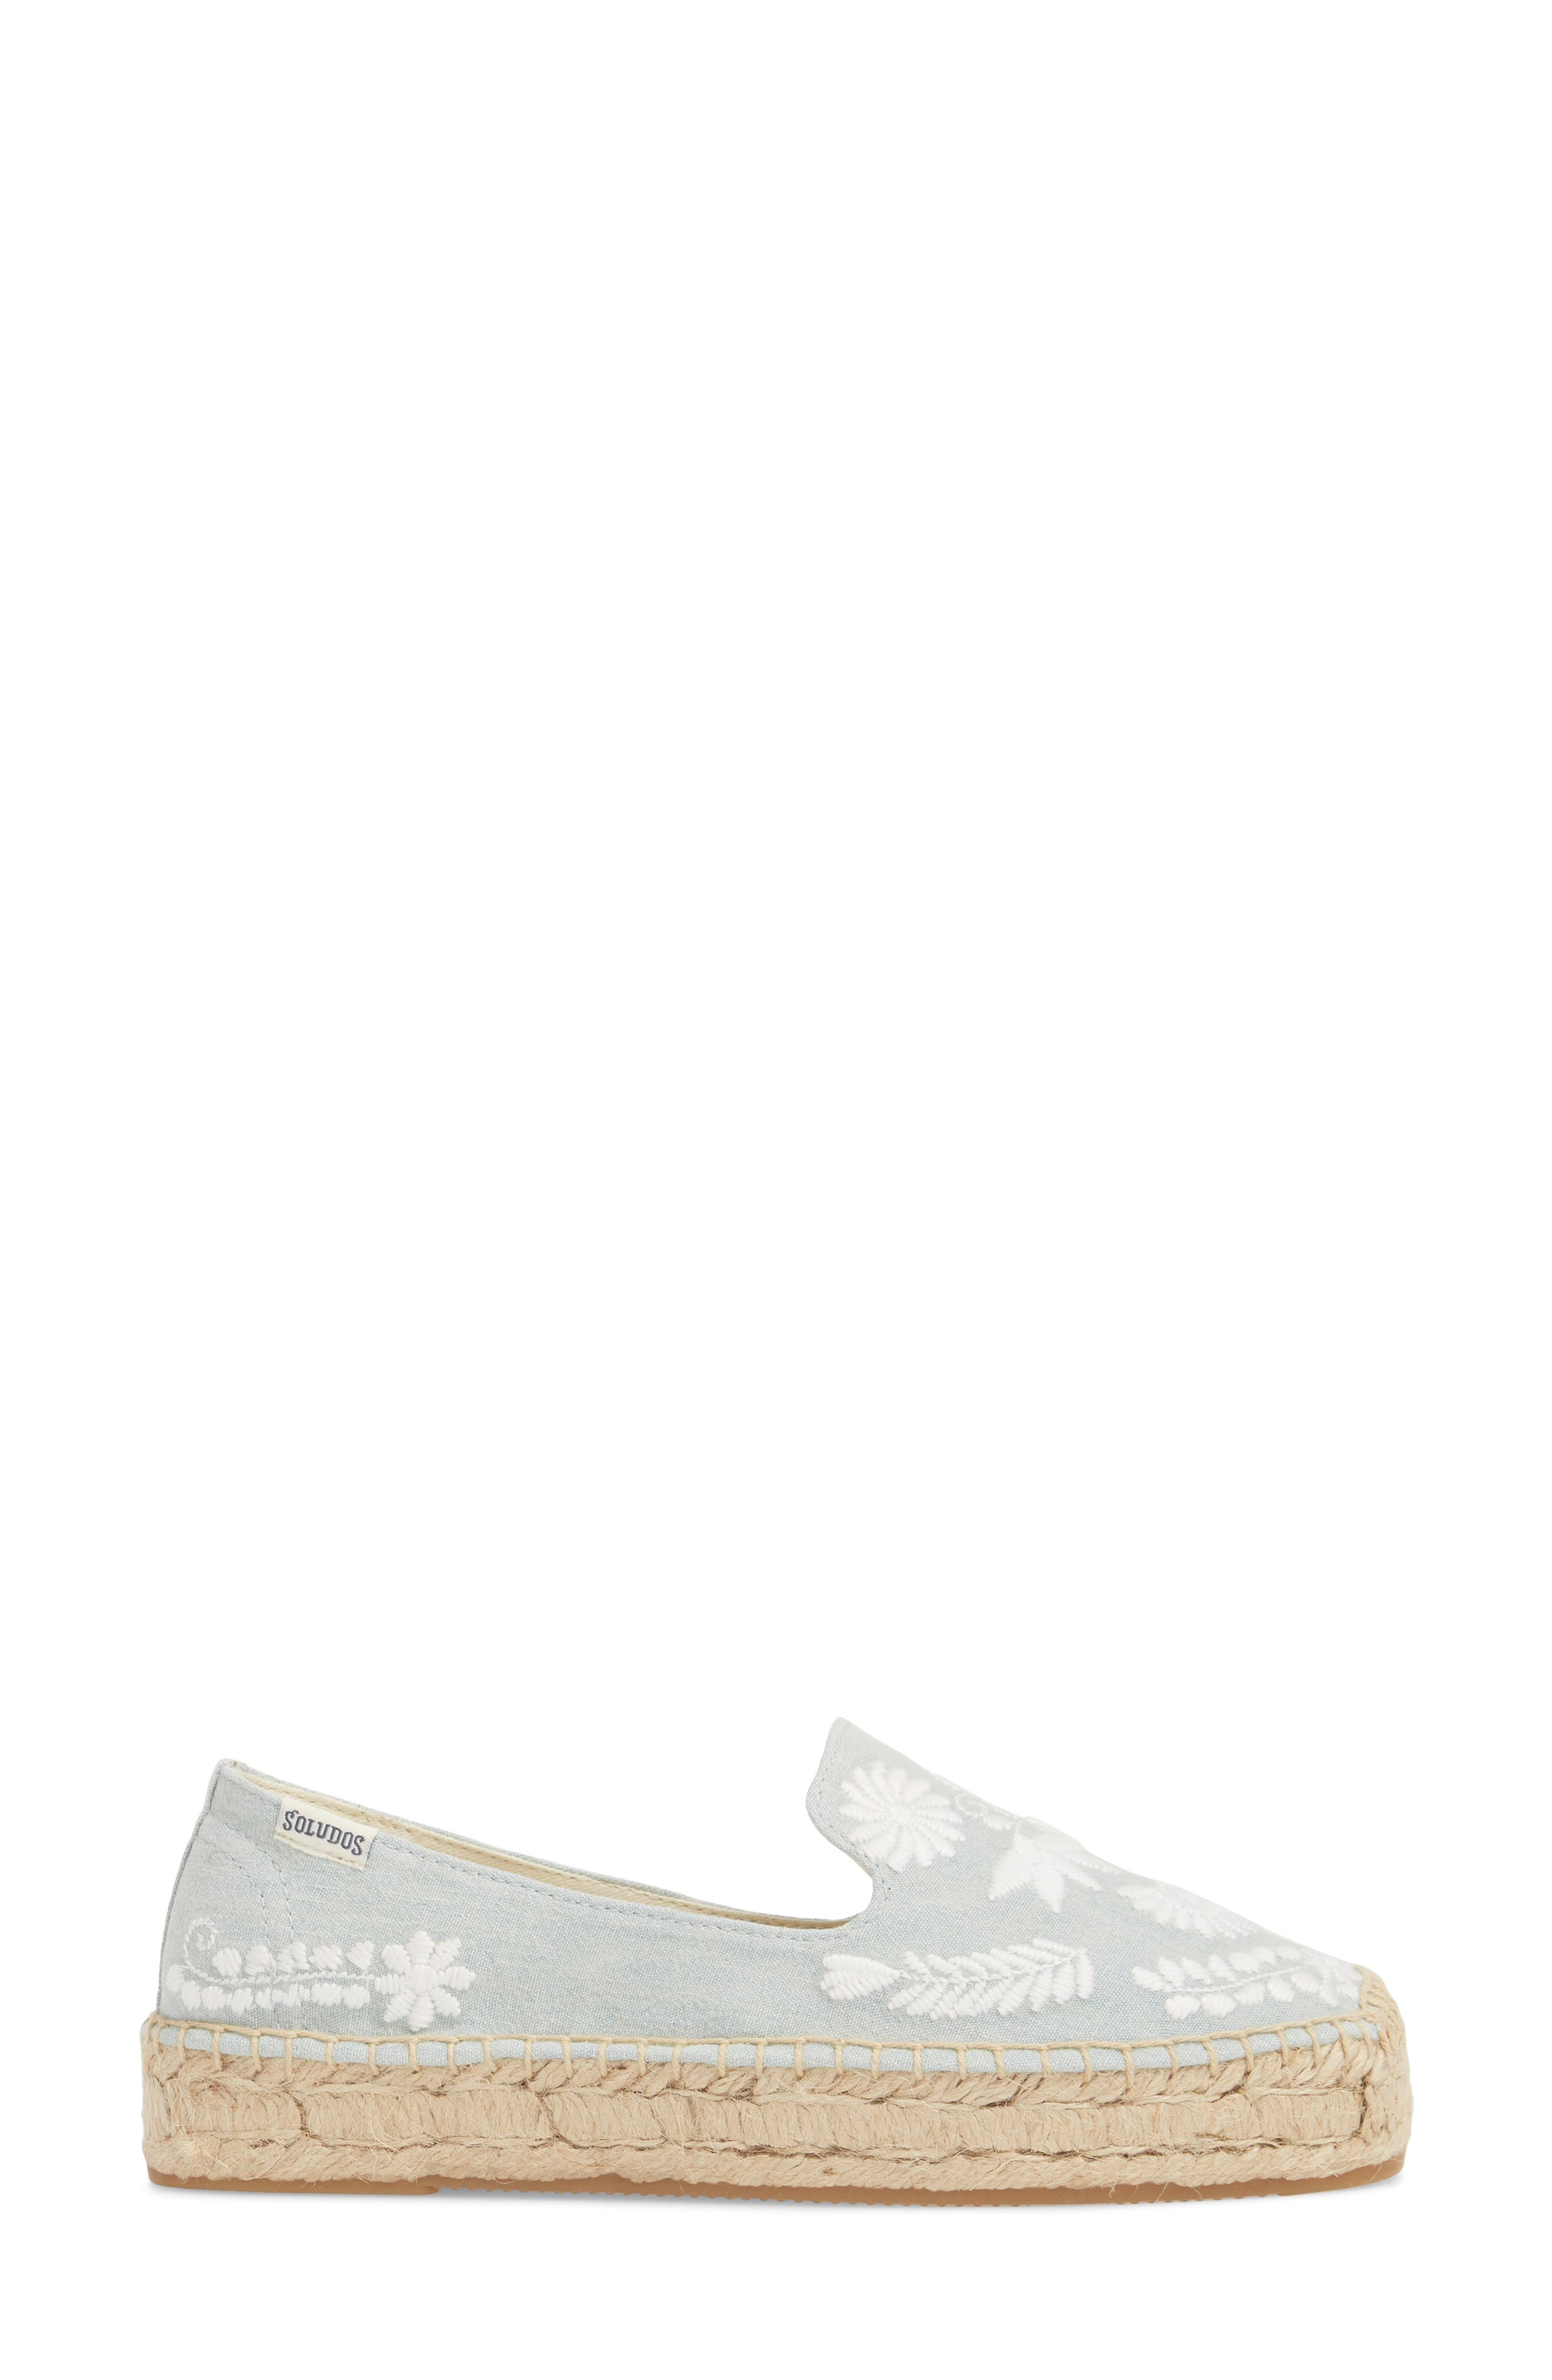 Ibiza Embroidered Loafer Espadrille,                             Alternate thumbnail 3, color,                             CHAMBRAY